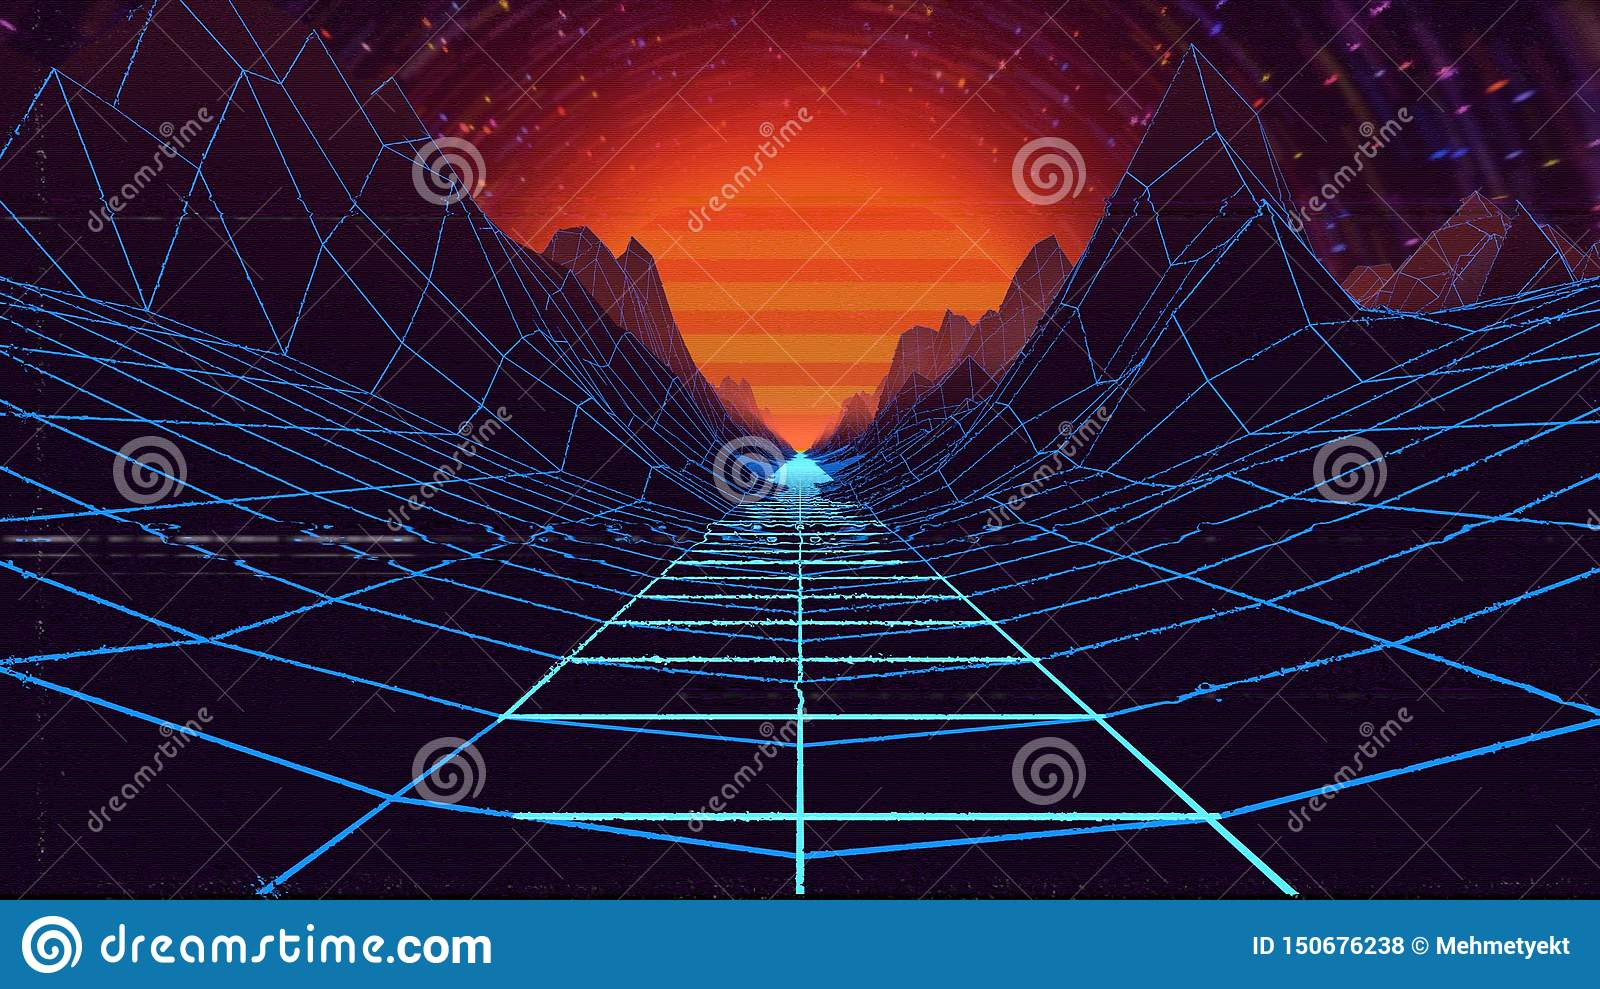 3d illustration of a country moving independently of time and space